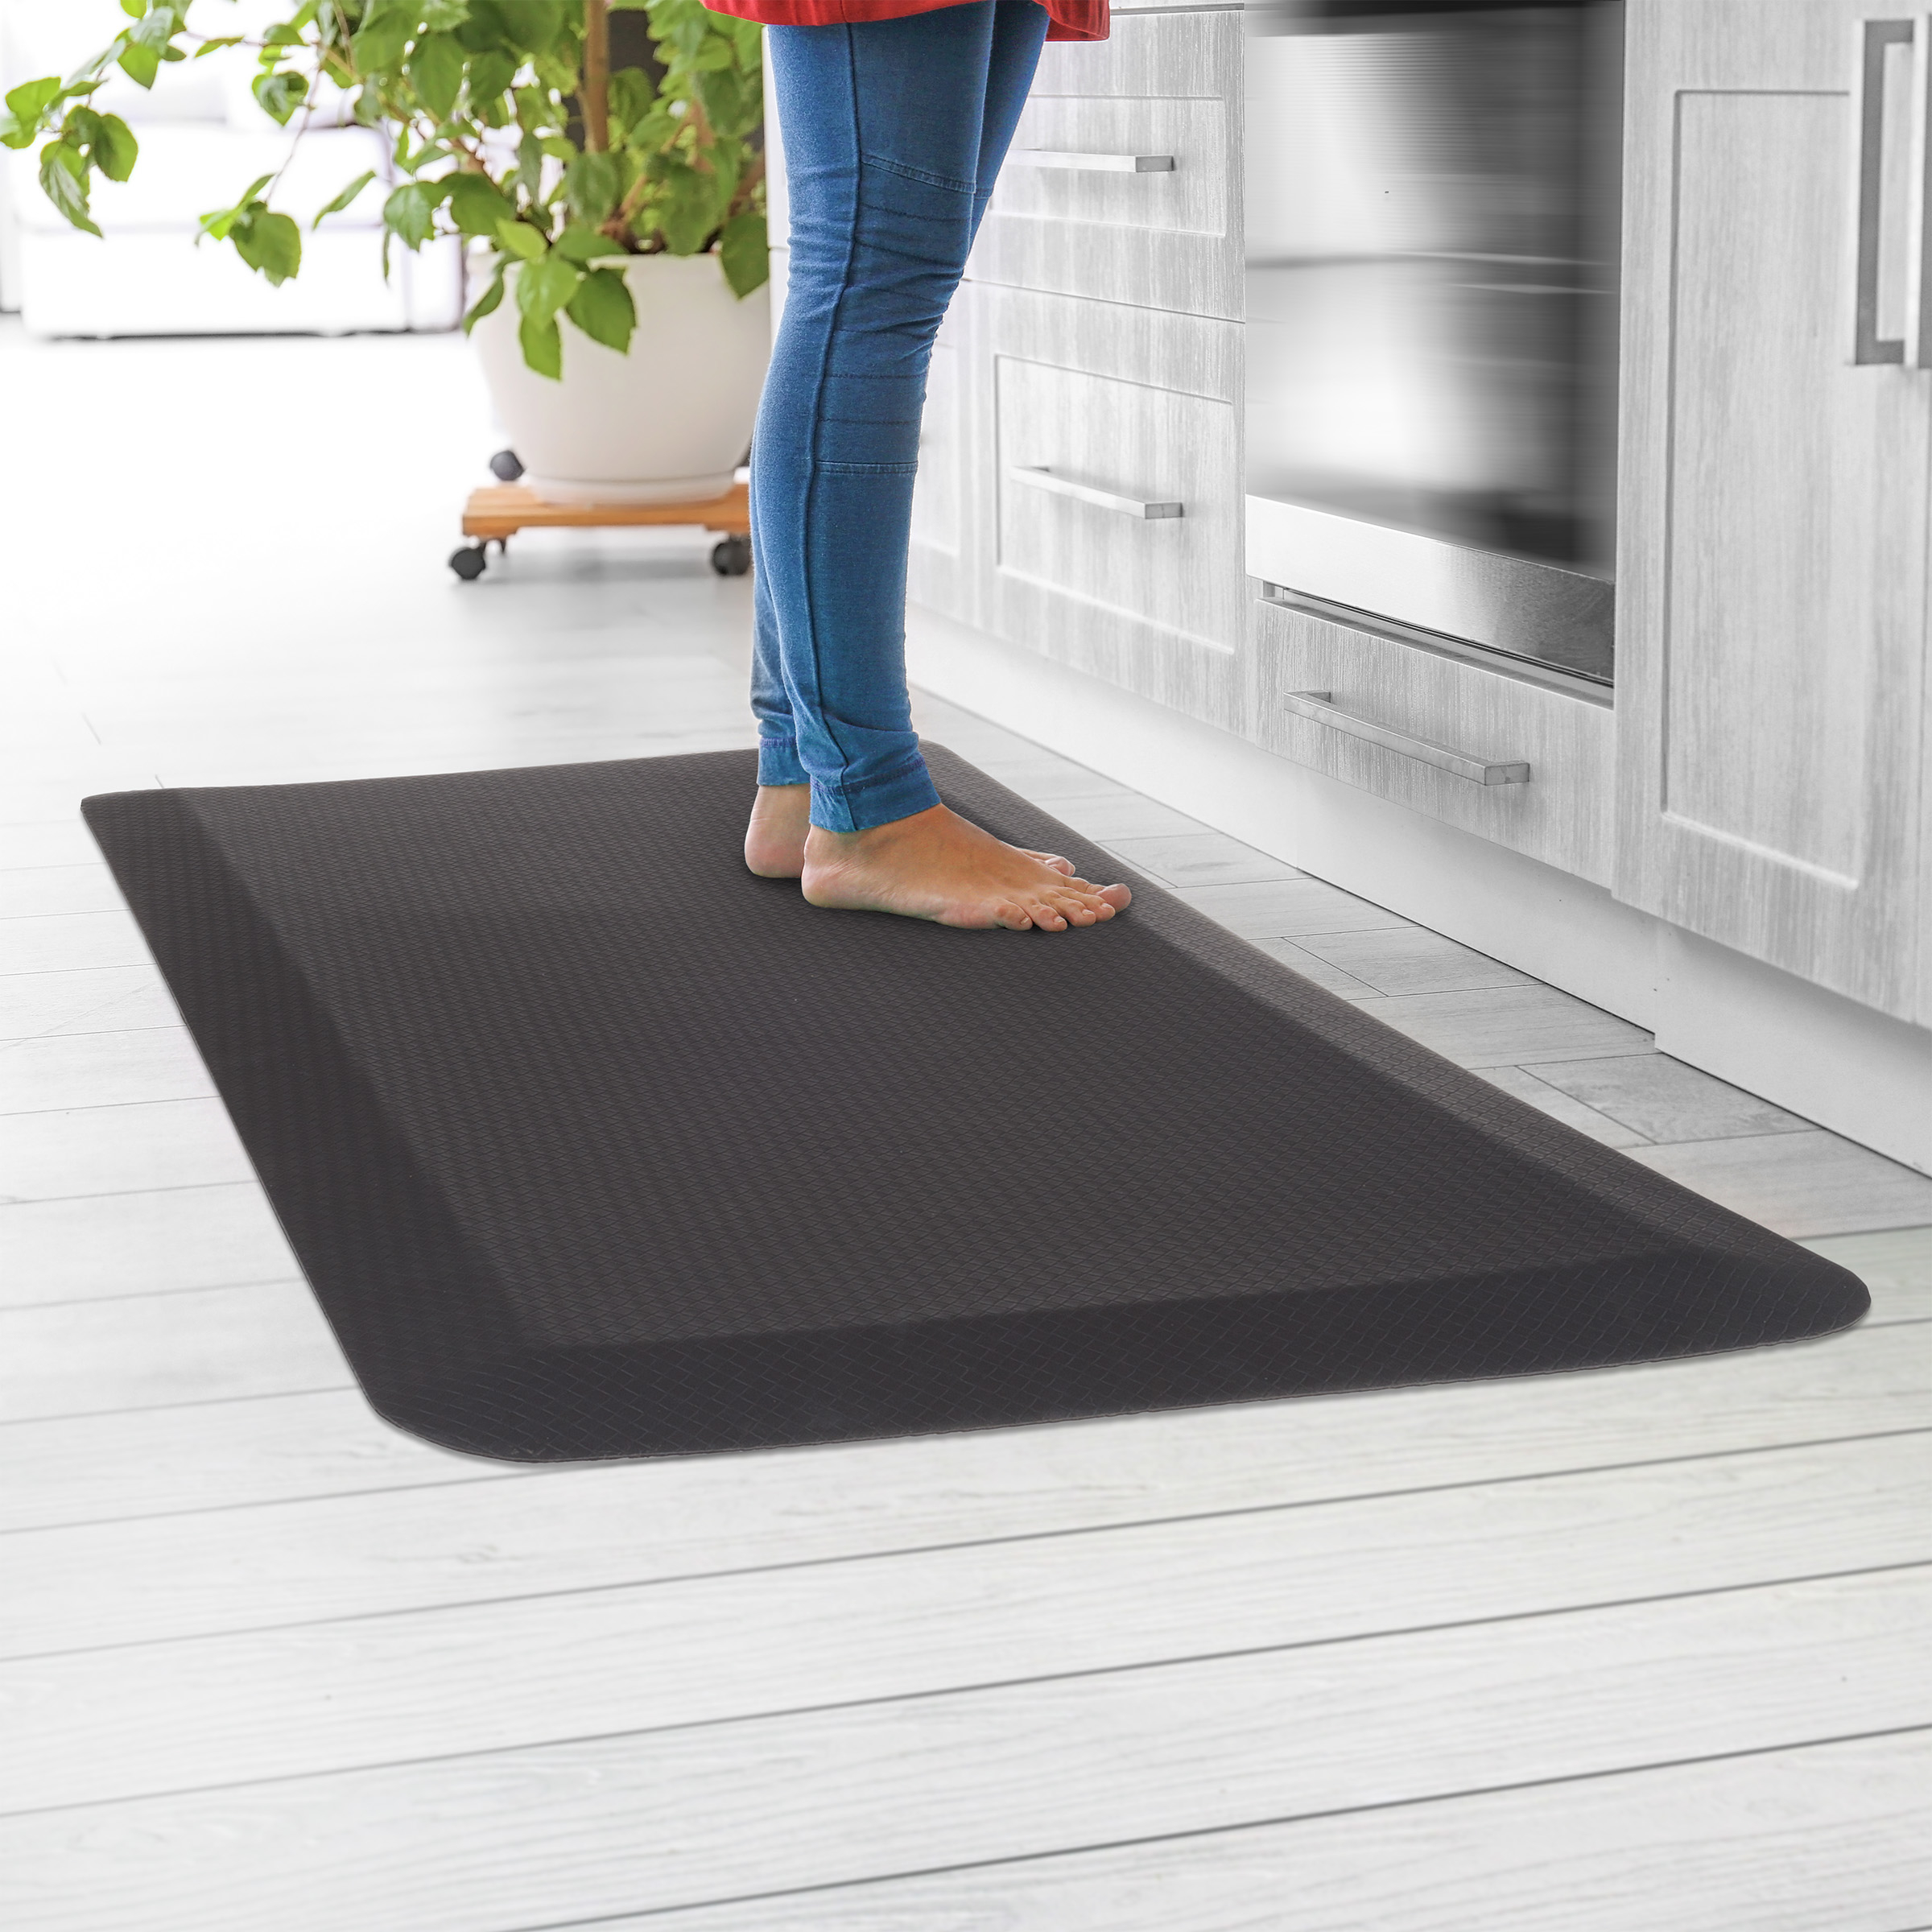 Anti-Fatigue Mat Durable Thick Cushioned Floor Mat- Soft Non-Slip Comfortable Padding Home Office